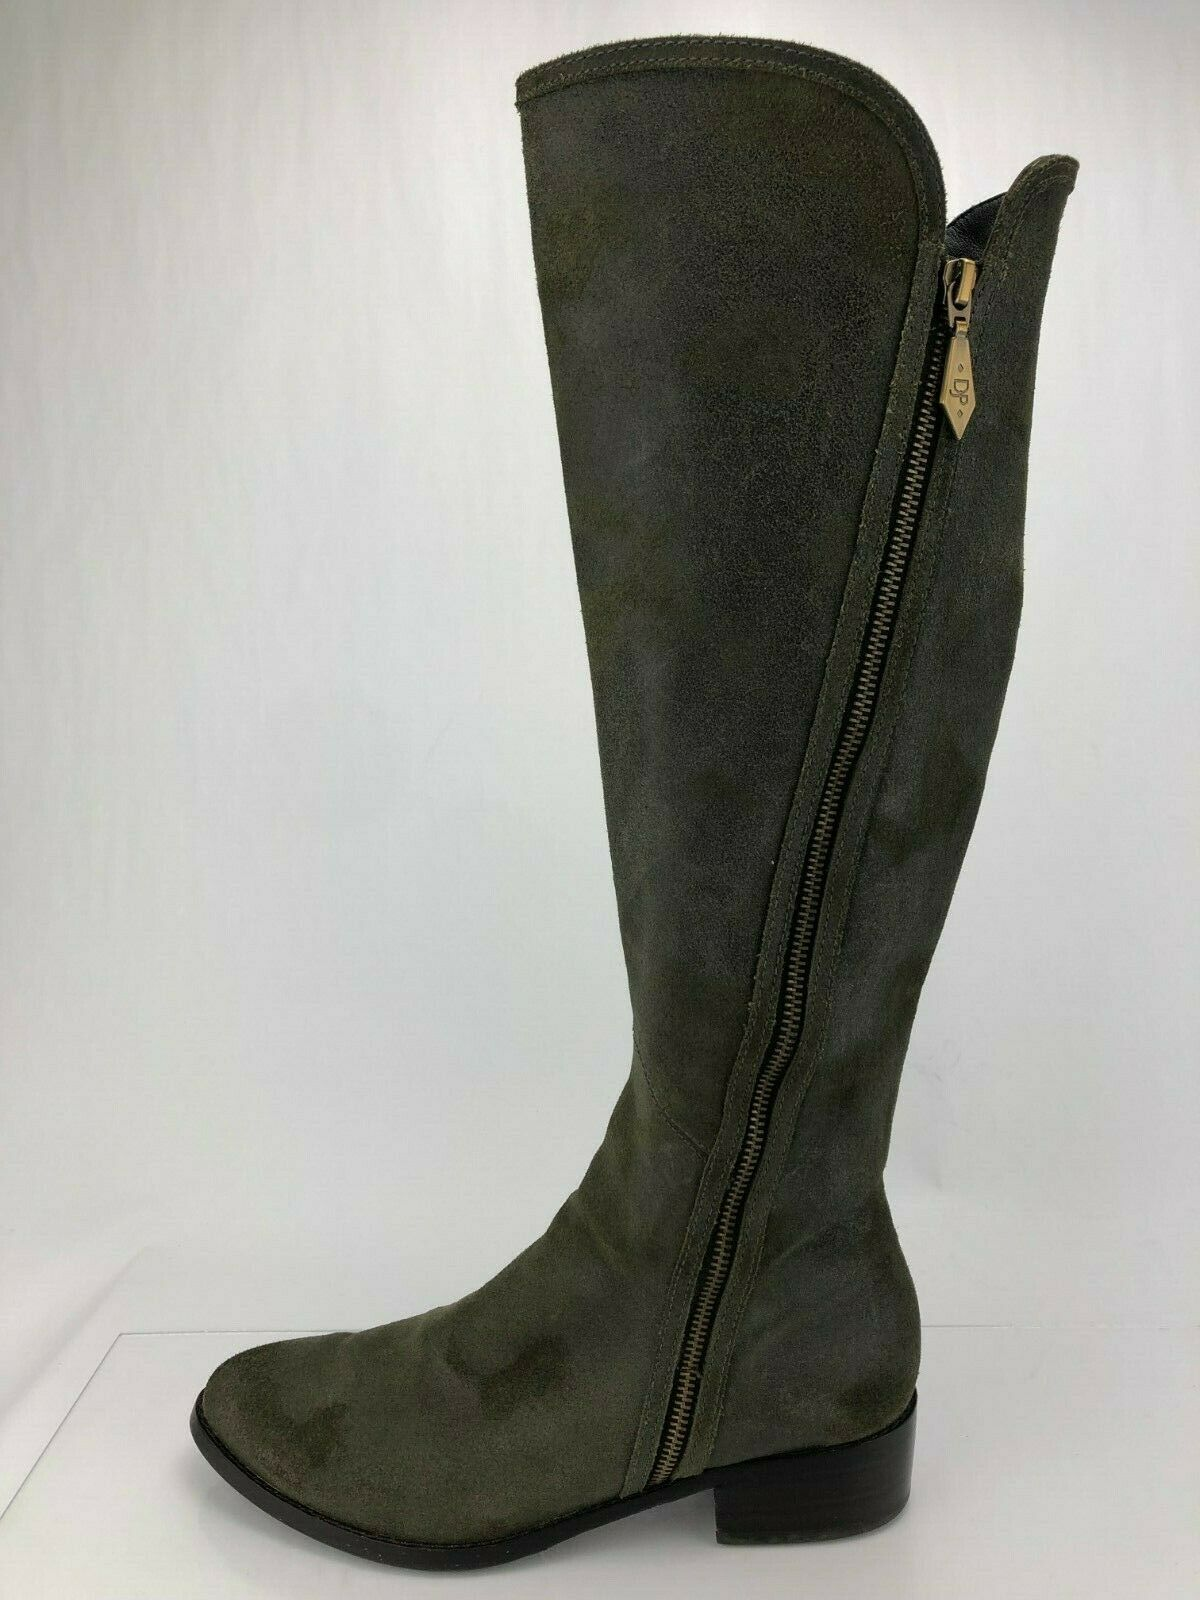 Donald J Pliner Knee High Boots Nova Green Suede Zip Tall Fashion Womens 7.5 M